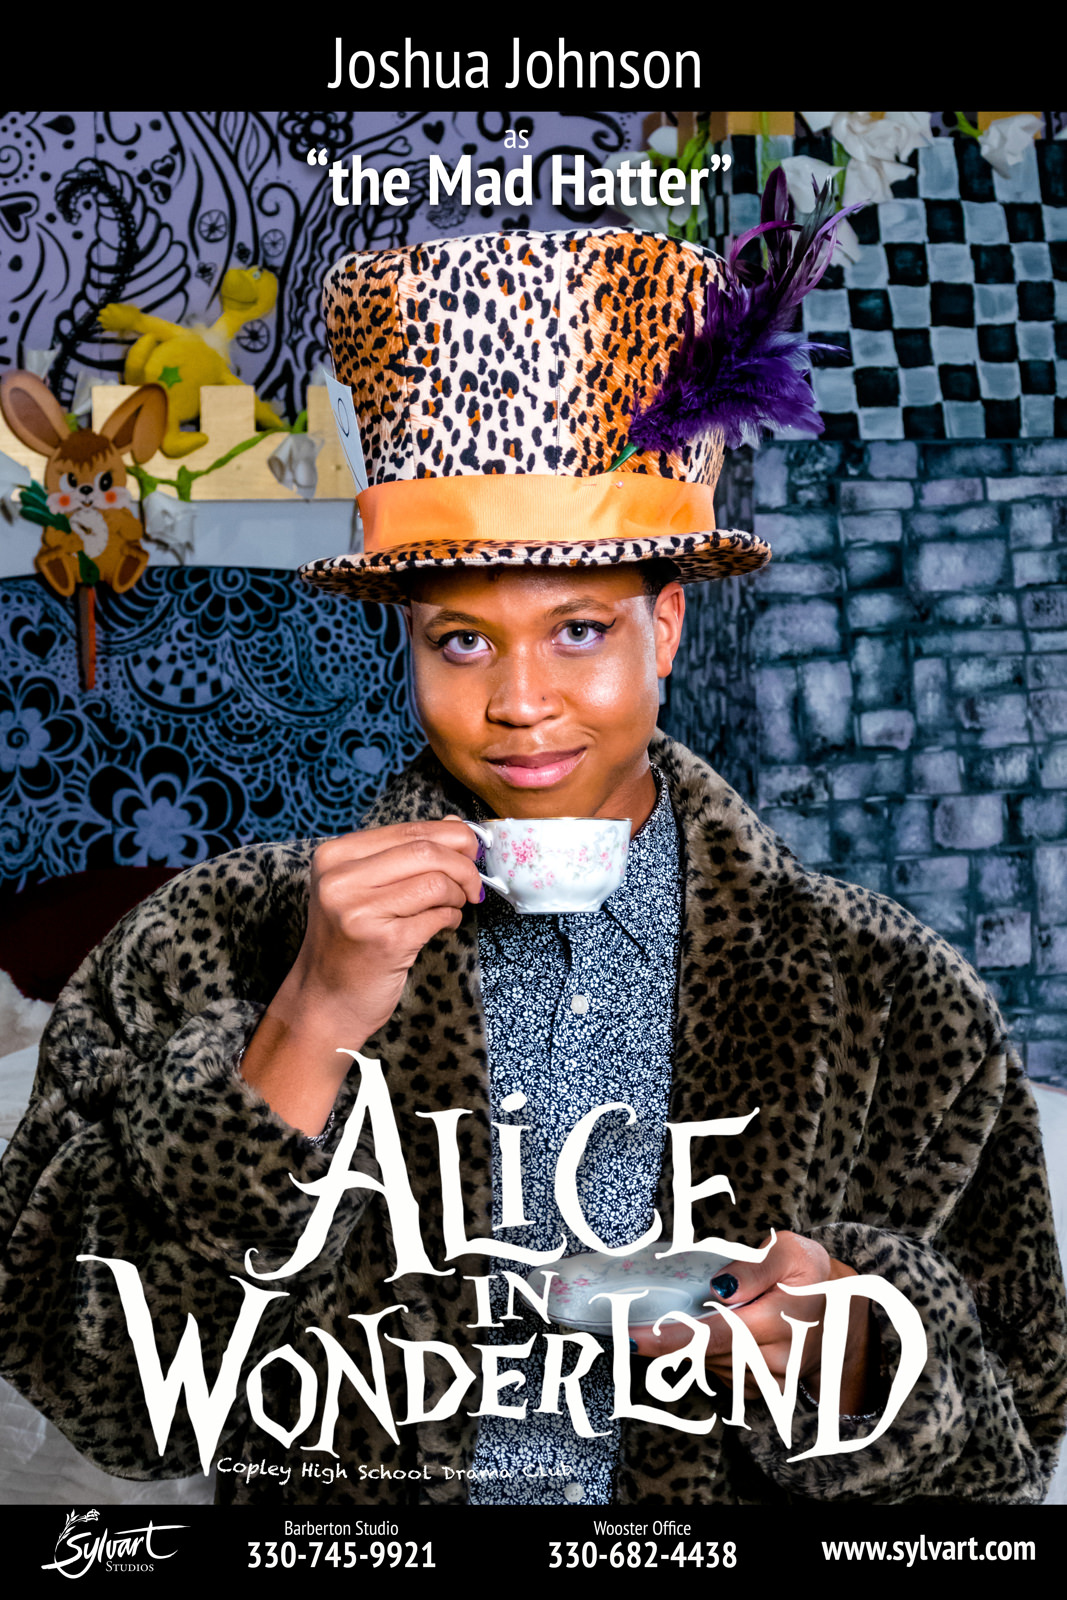 JOSHUA-Alice in Wonderland.JPG